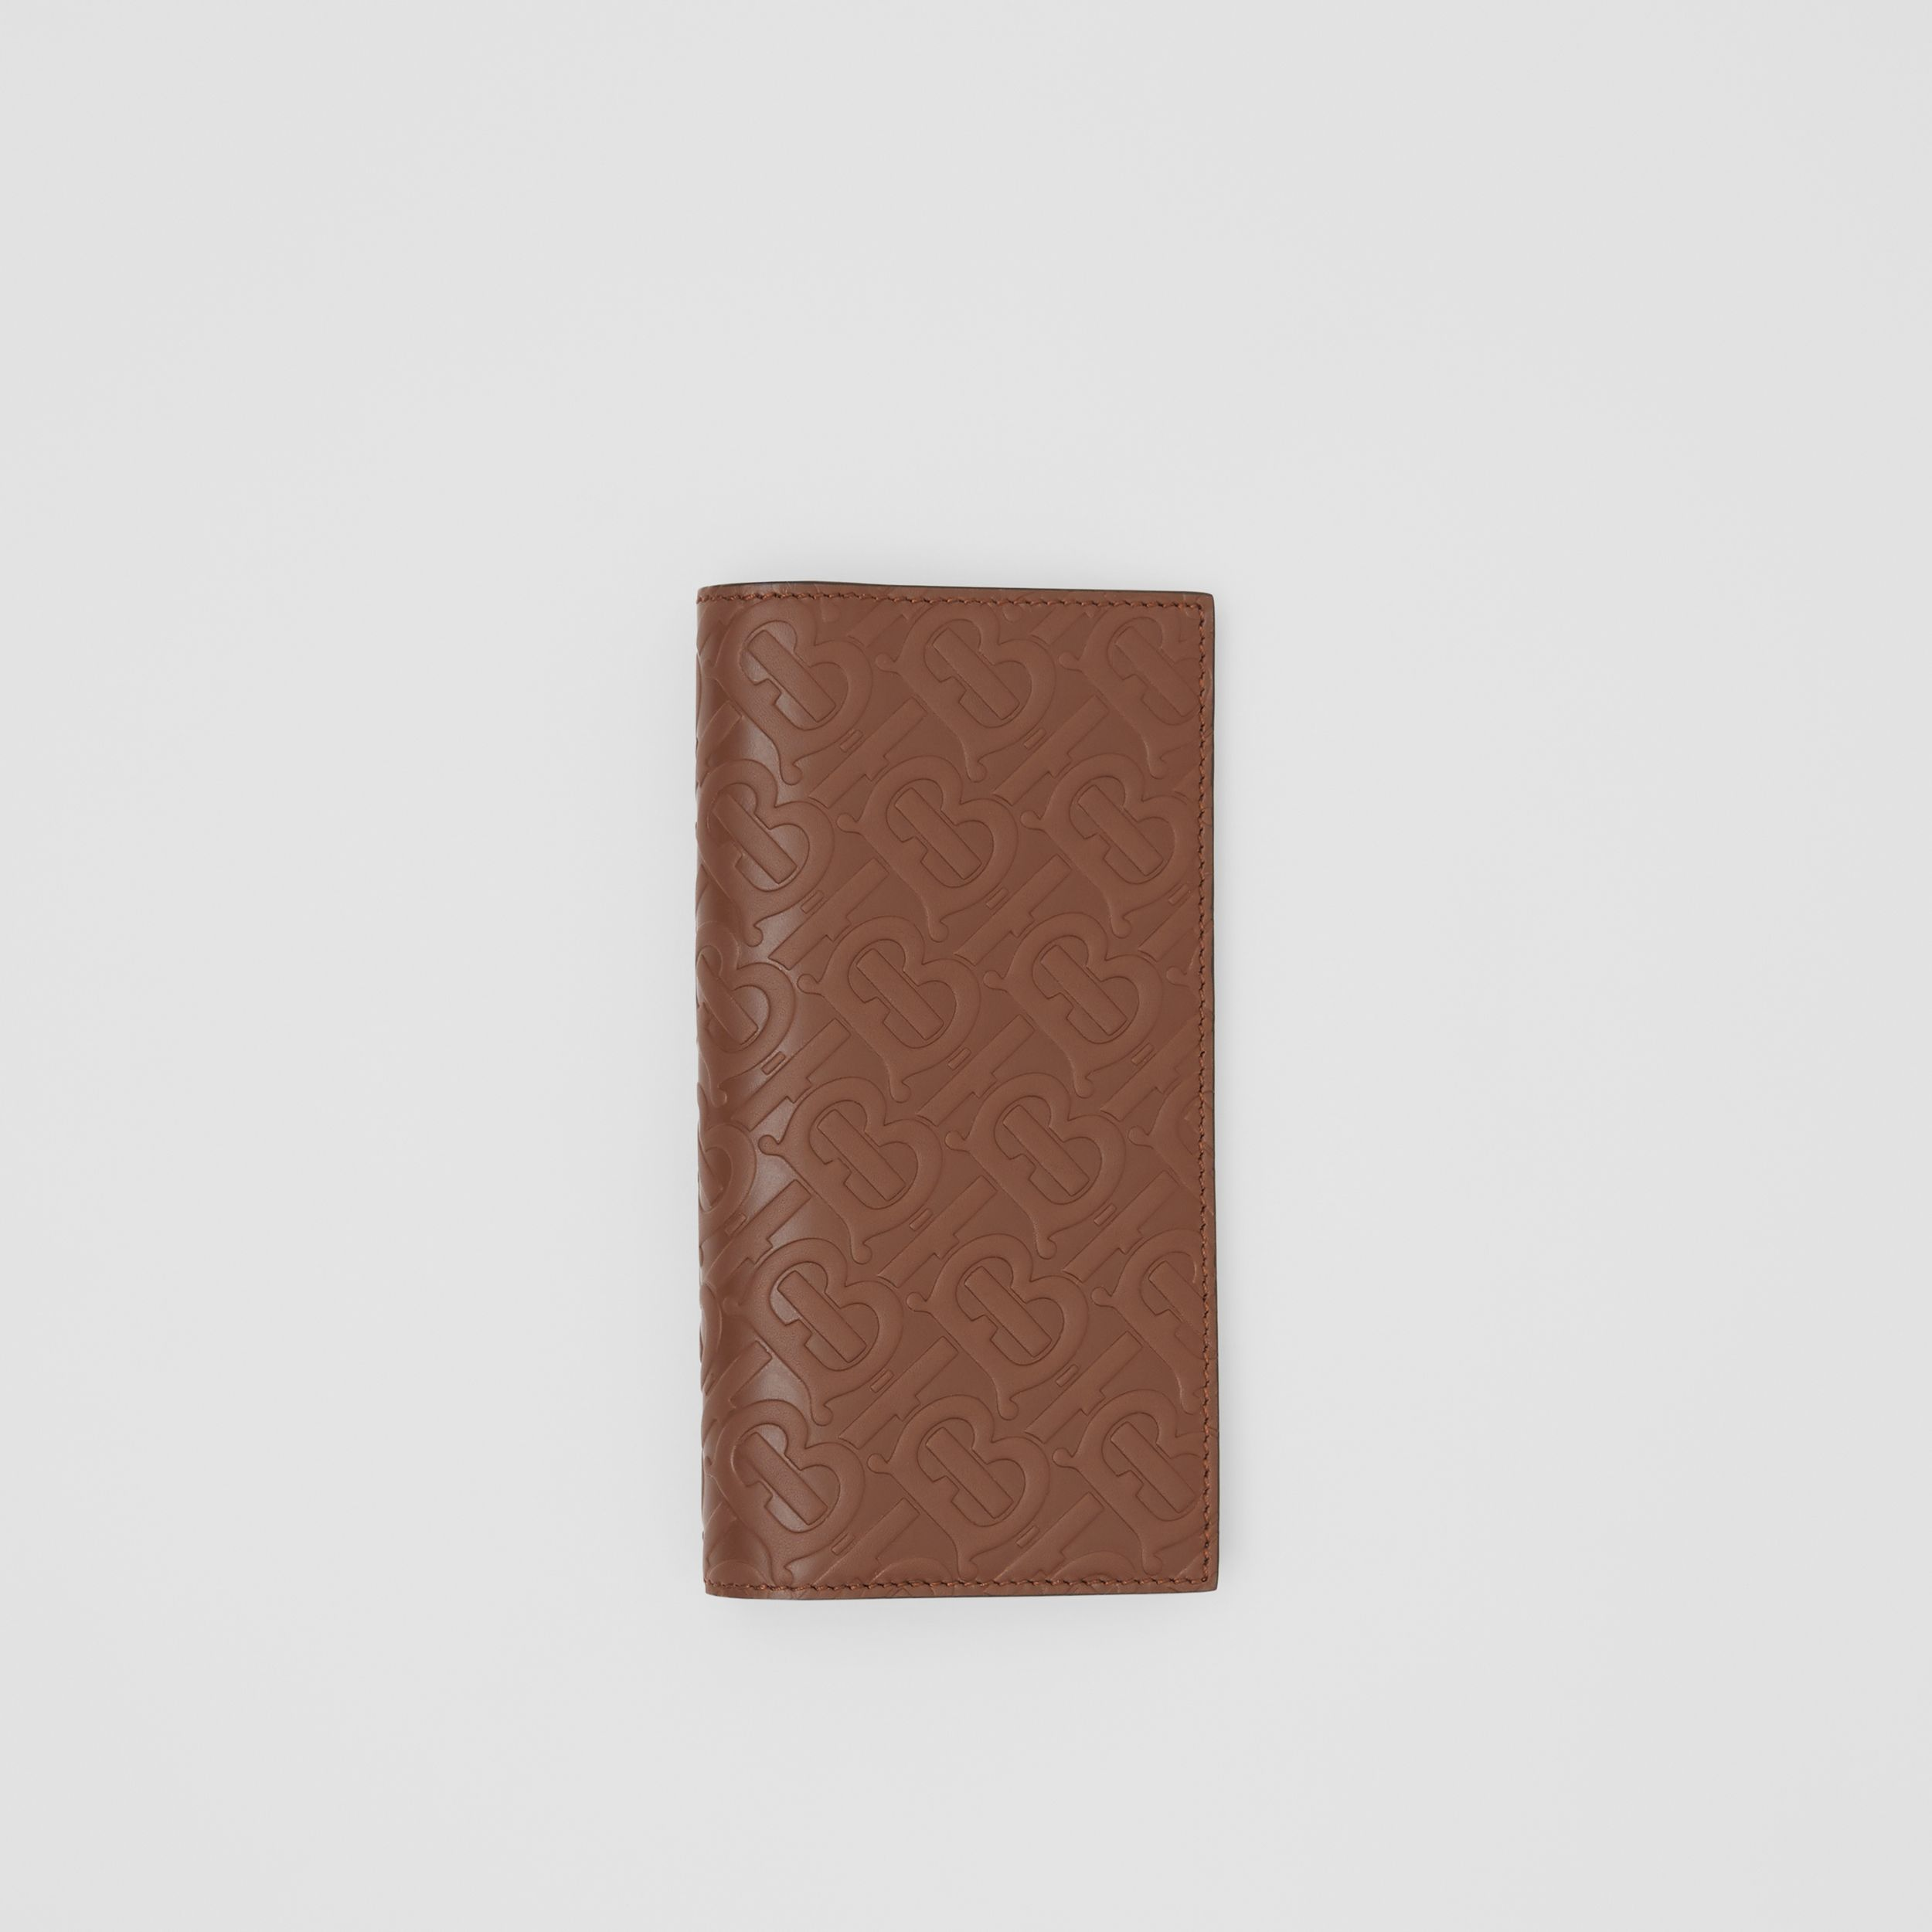 Monogram Leather Continental Wallet in Dark Tan - Men | Burberry - 3